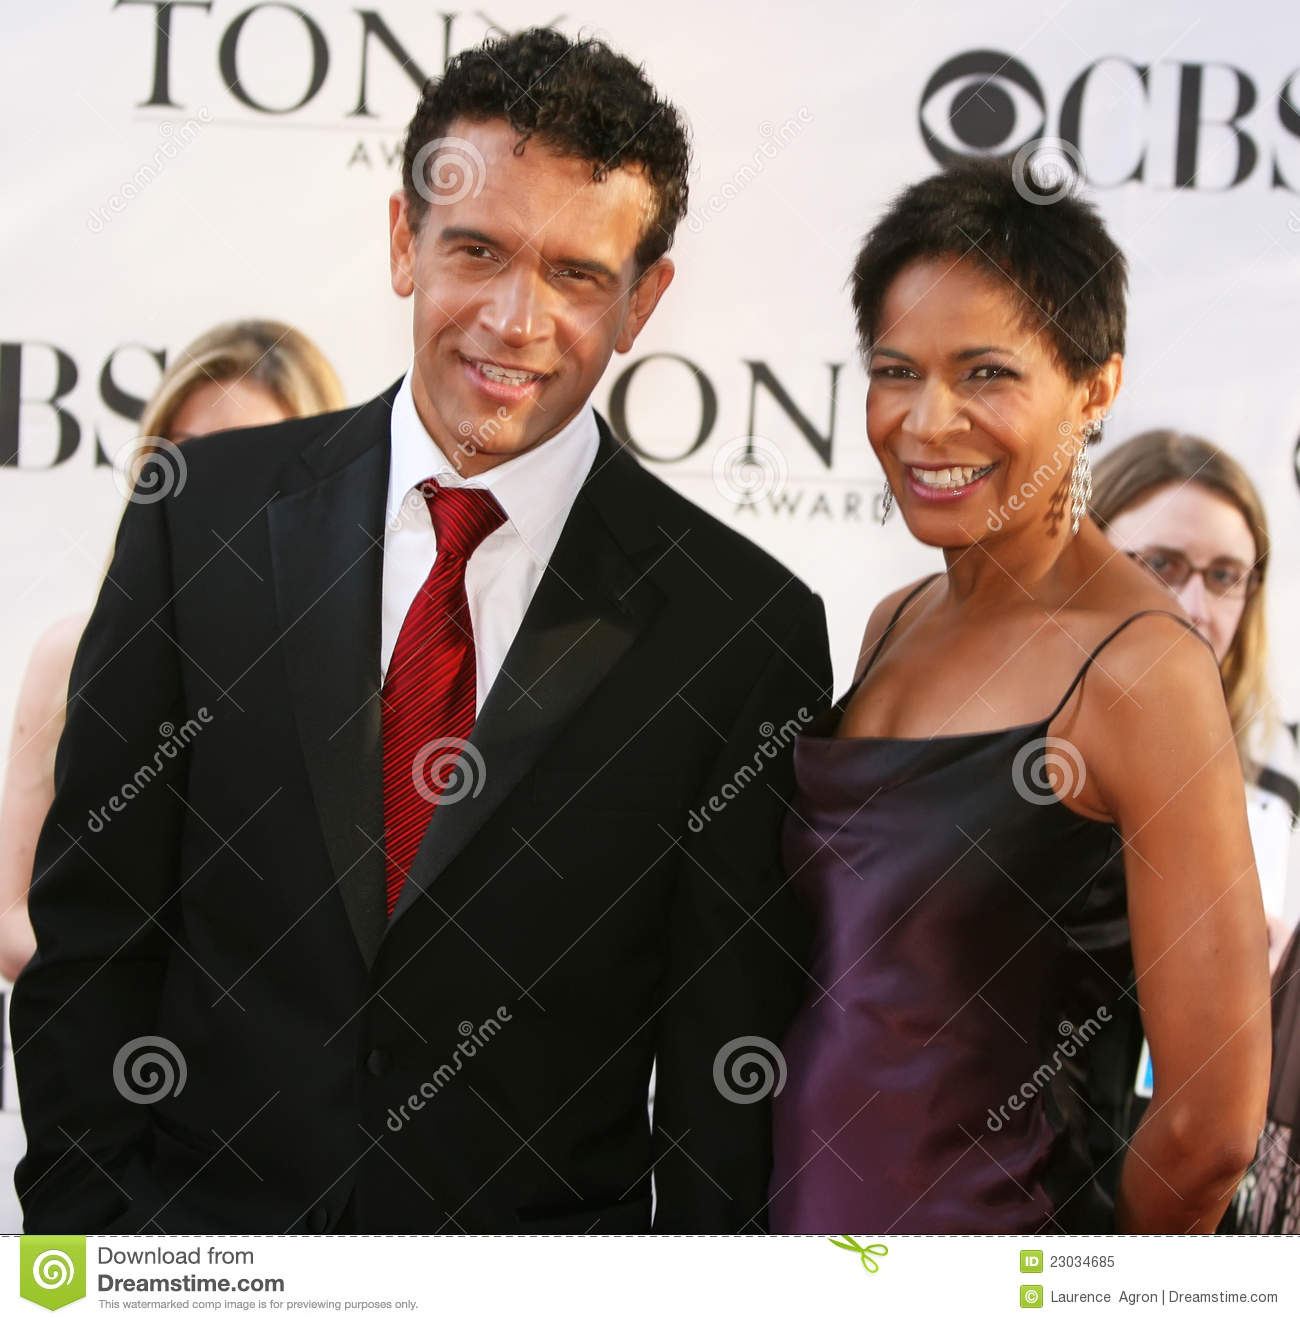 brian stokes mitchell and allyson tucker editorial image carpet clipart images carpet clip art free